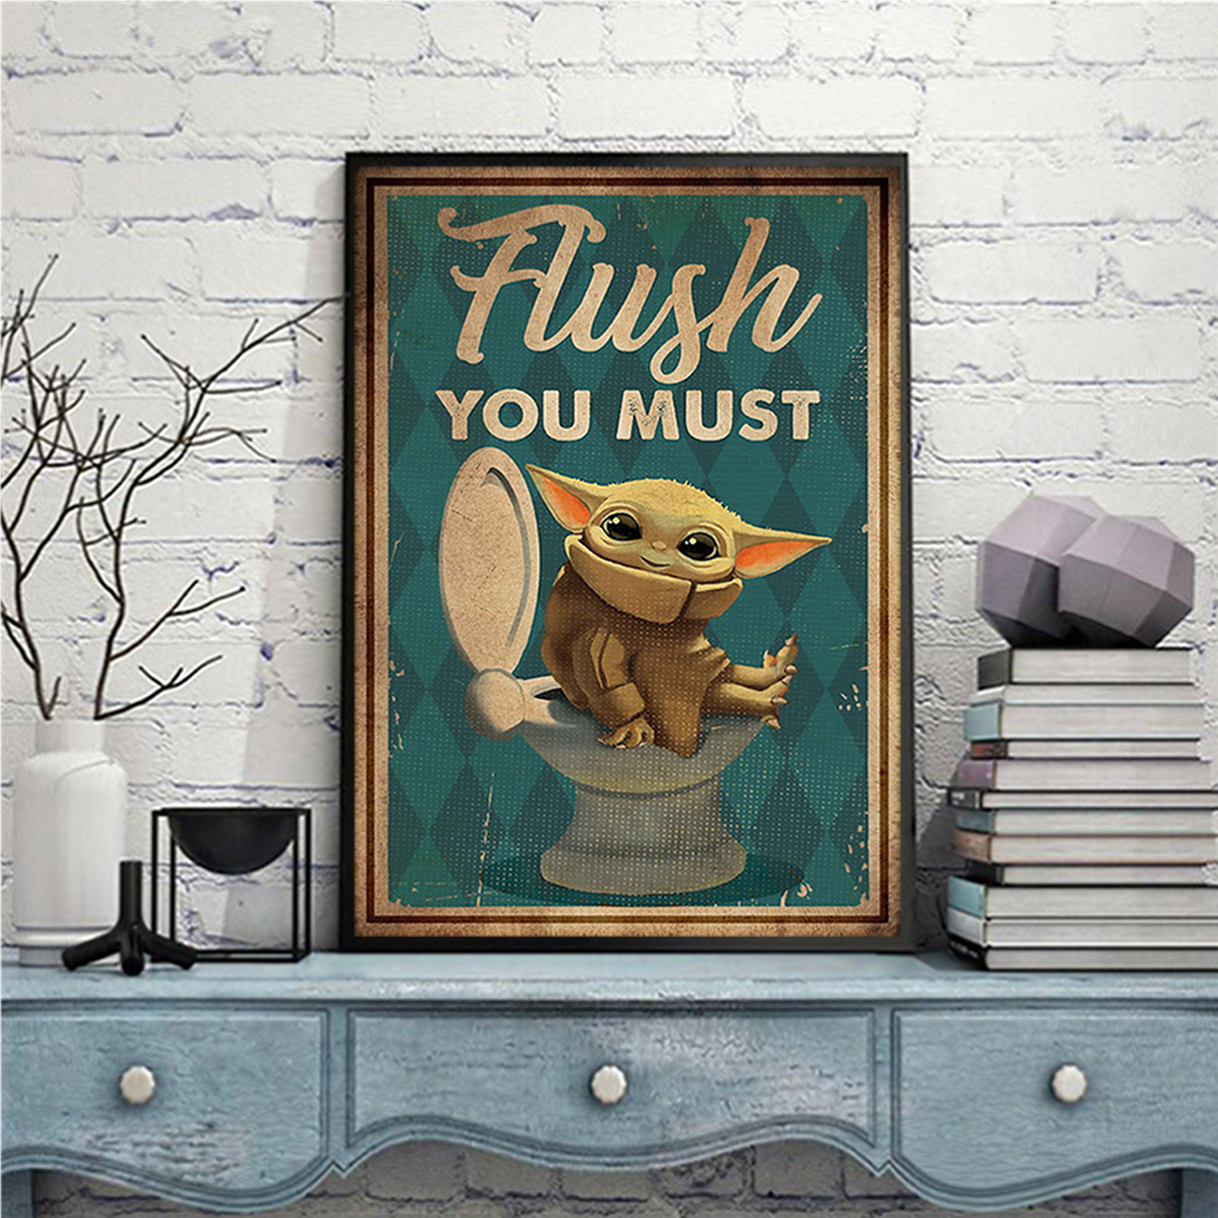 Baby yoda flush you must poster A1